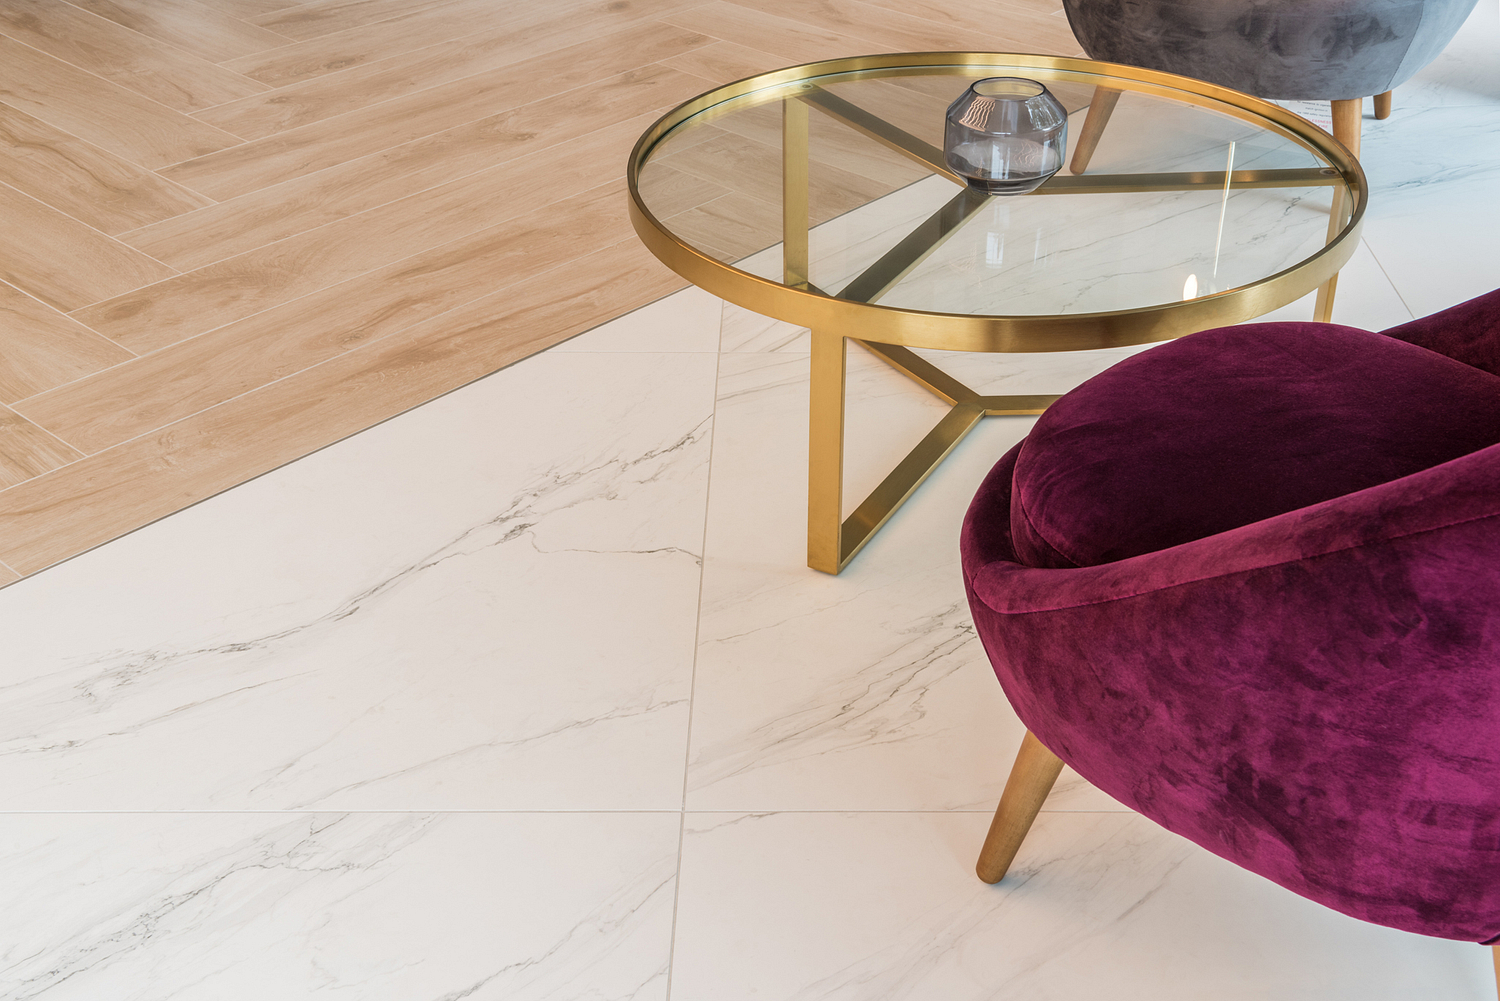 Wood and tile flooring contrasts with brass table detail, London